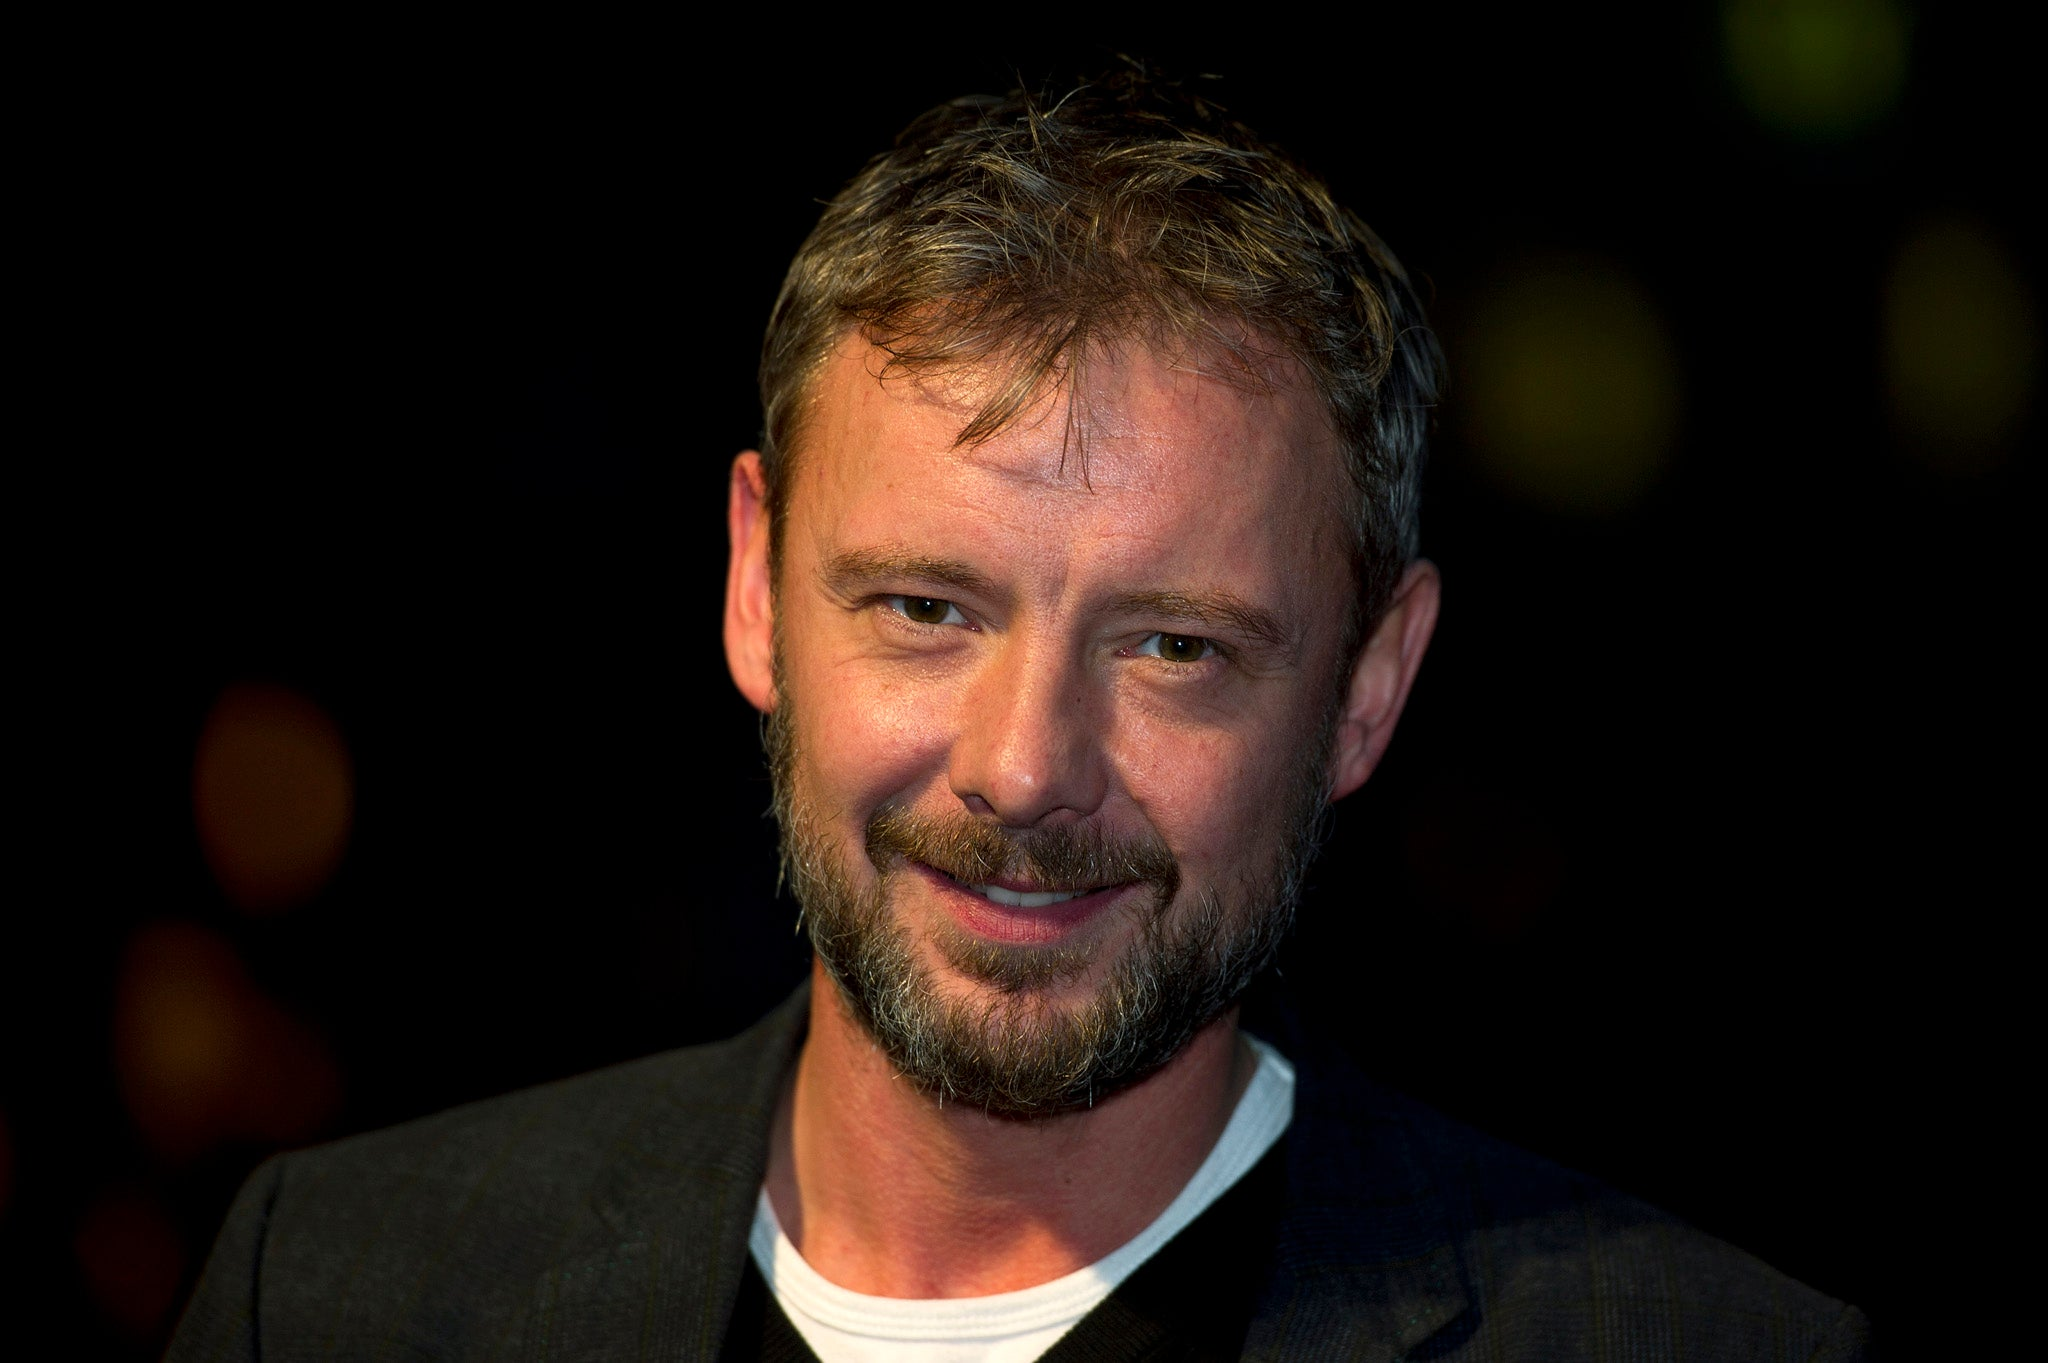 john simm imdbjohn simm master, john simm doctor who, john simm thom yorke, john simm david morrissey, john simm exile, john simm wiki, john simm wife, john simm philip glenister, john simm christina ricci, john simm imdb, john simm boston kickout, john simm crime and punishment, john simm hamlet, john simm simon pegg, john simm instagram, john simm interview, john simm height, john simm martin freeman, john simm theatre, john simm latest news